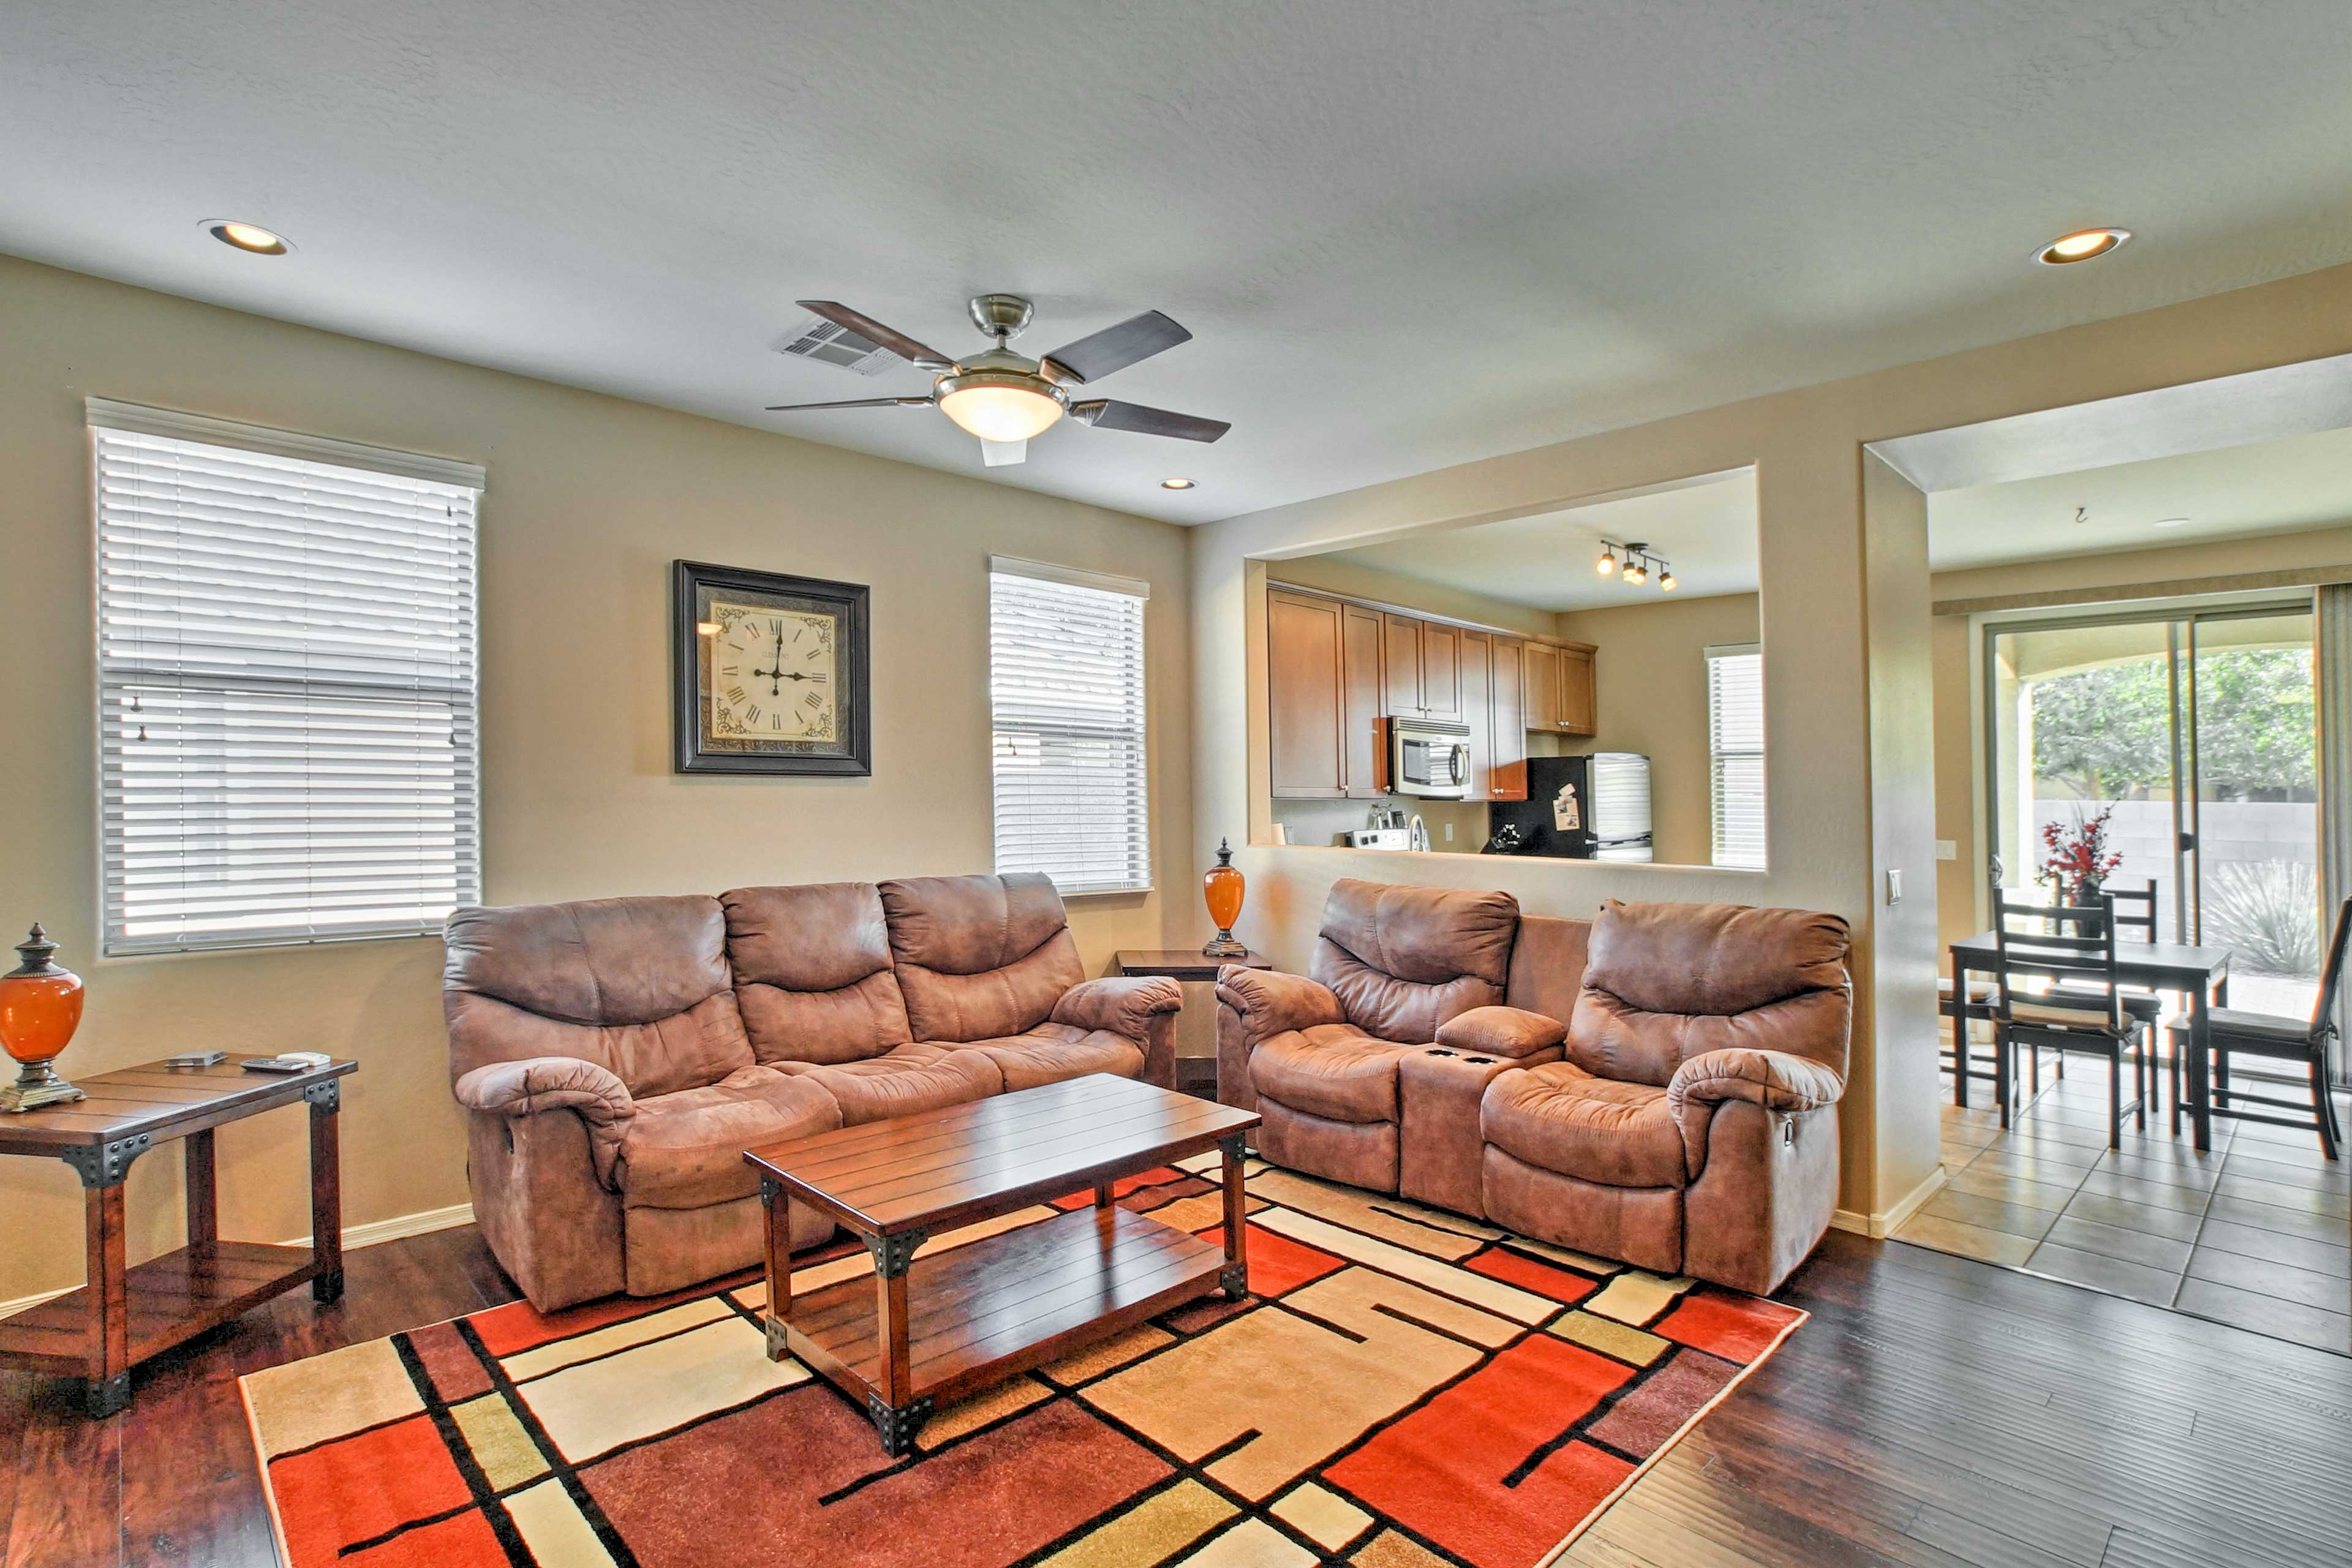 The interior is well-appointed and decorated with comfort in mind.